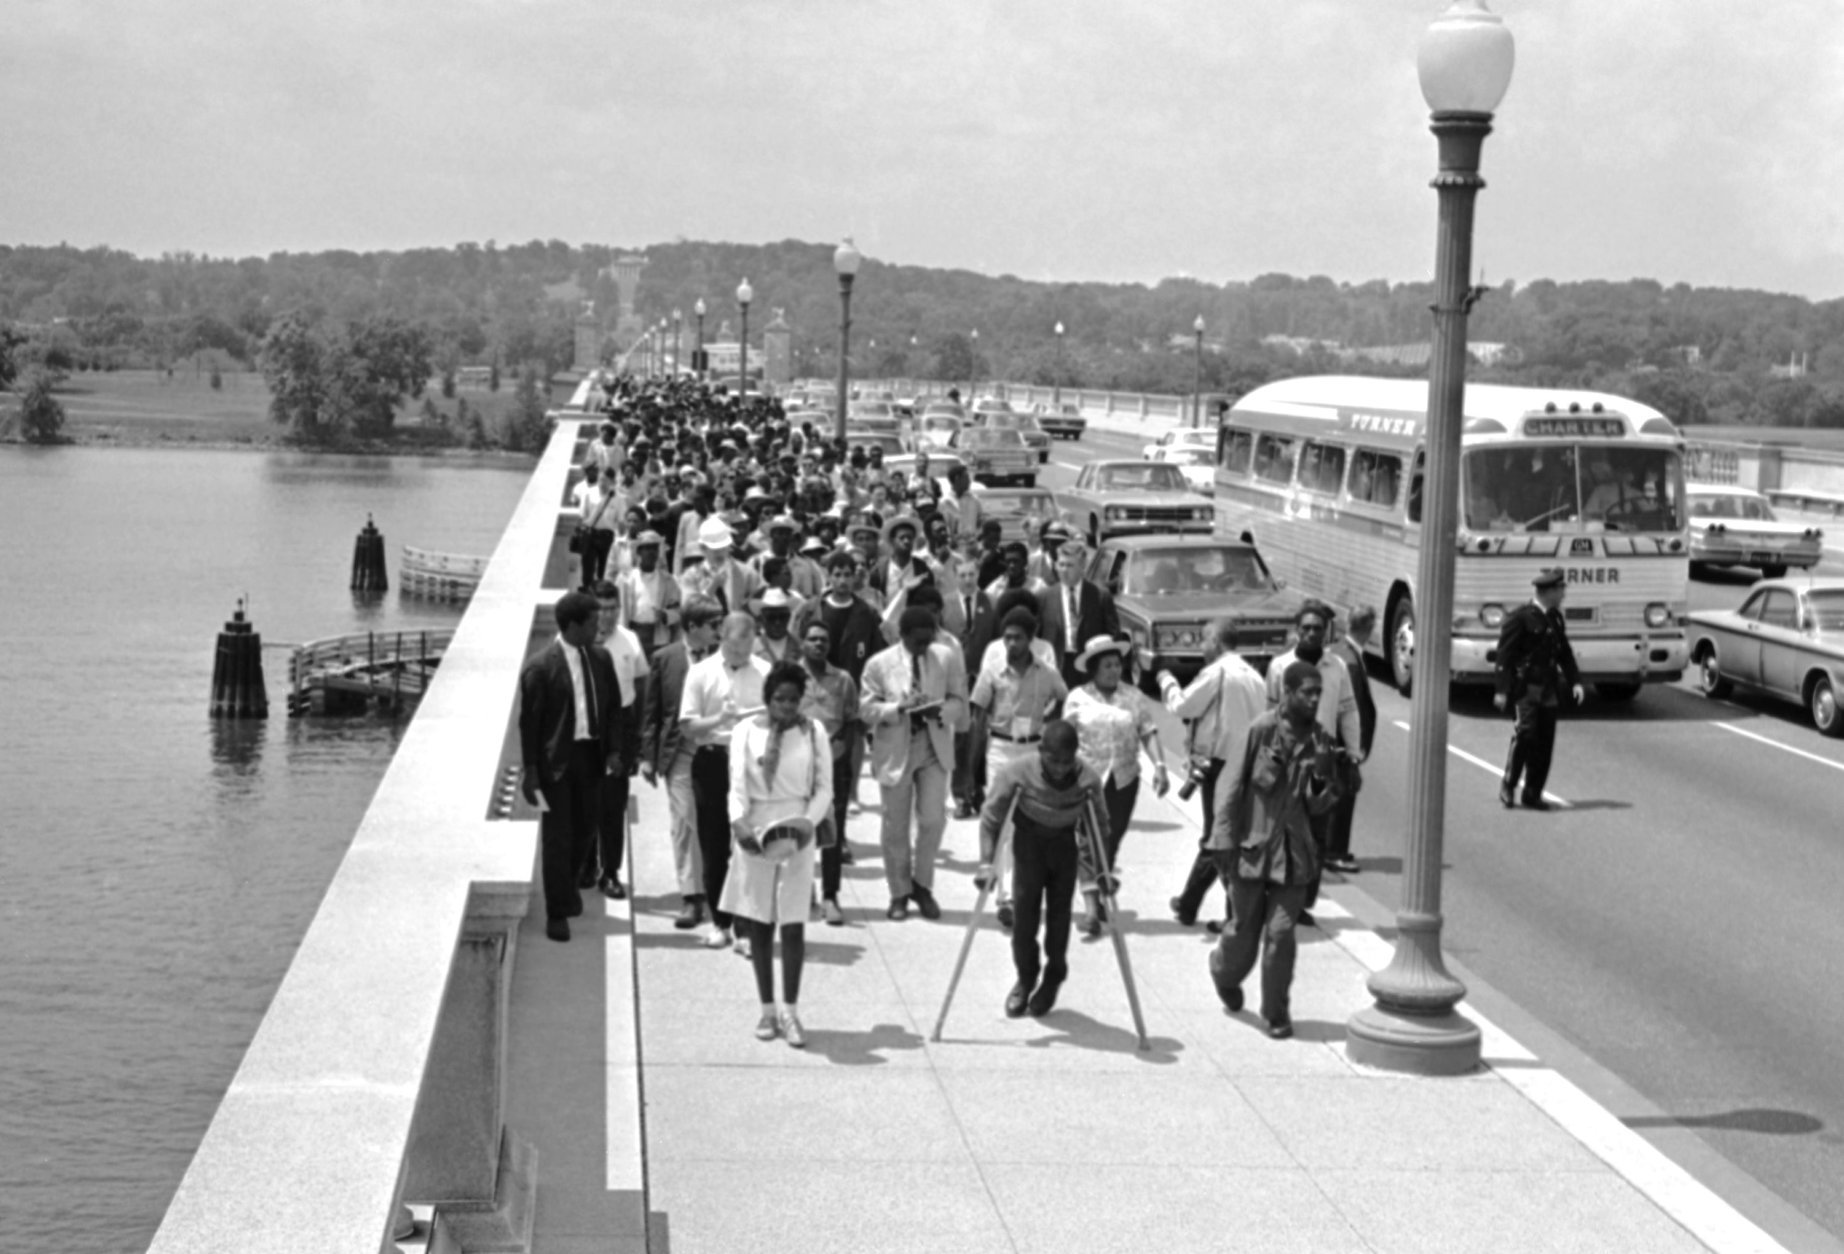 This group of newly-arrived demonstrators of the Poor People's Campaign walk across Memorial Bridge, spanning the Potomac River, May 22, 1968, to the plywood encampment at Resurrection City, USA. The new arrivals who have been staying in Northern Virginia churches since Sunday, are from Alabama, Mississippi, Georgia, North Carolina and Virginia. In background high on the slope of Arlington National Cemetery is the Lee Mansion. (AP Photo/Charles Tasnadi)